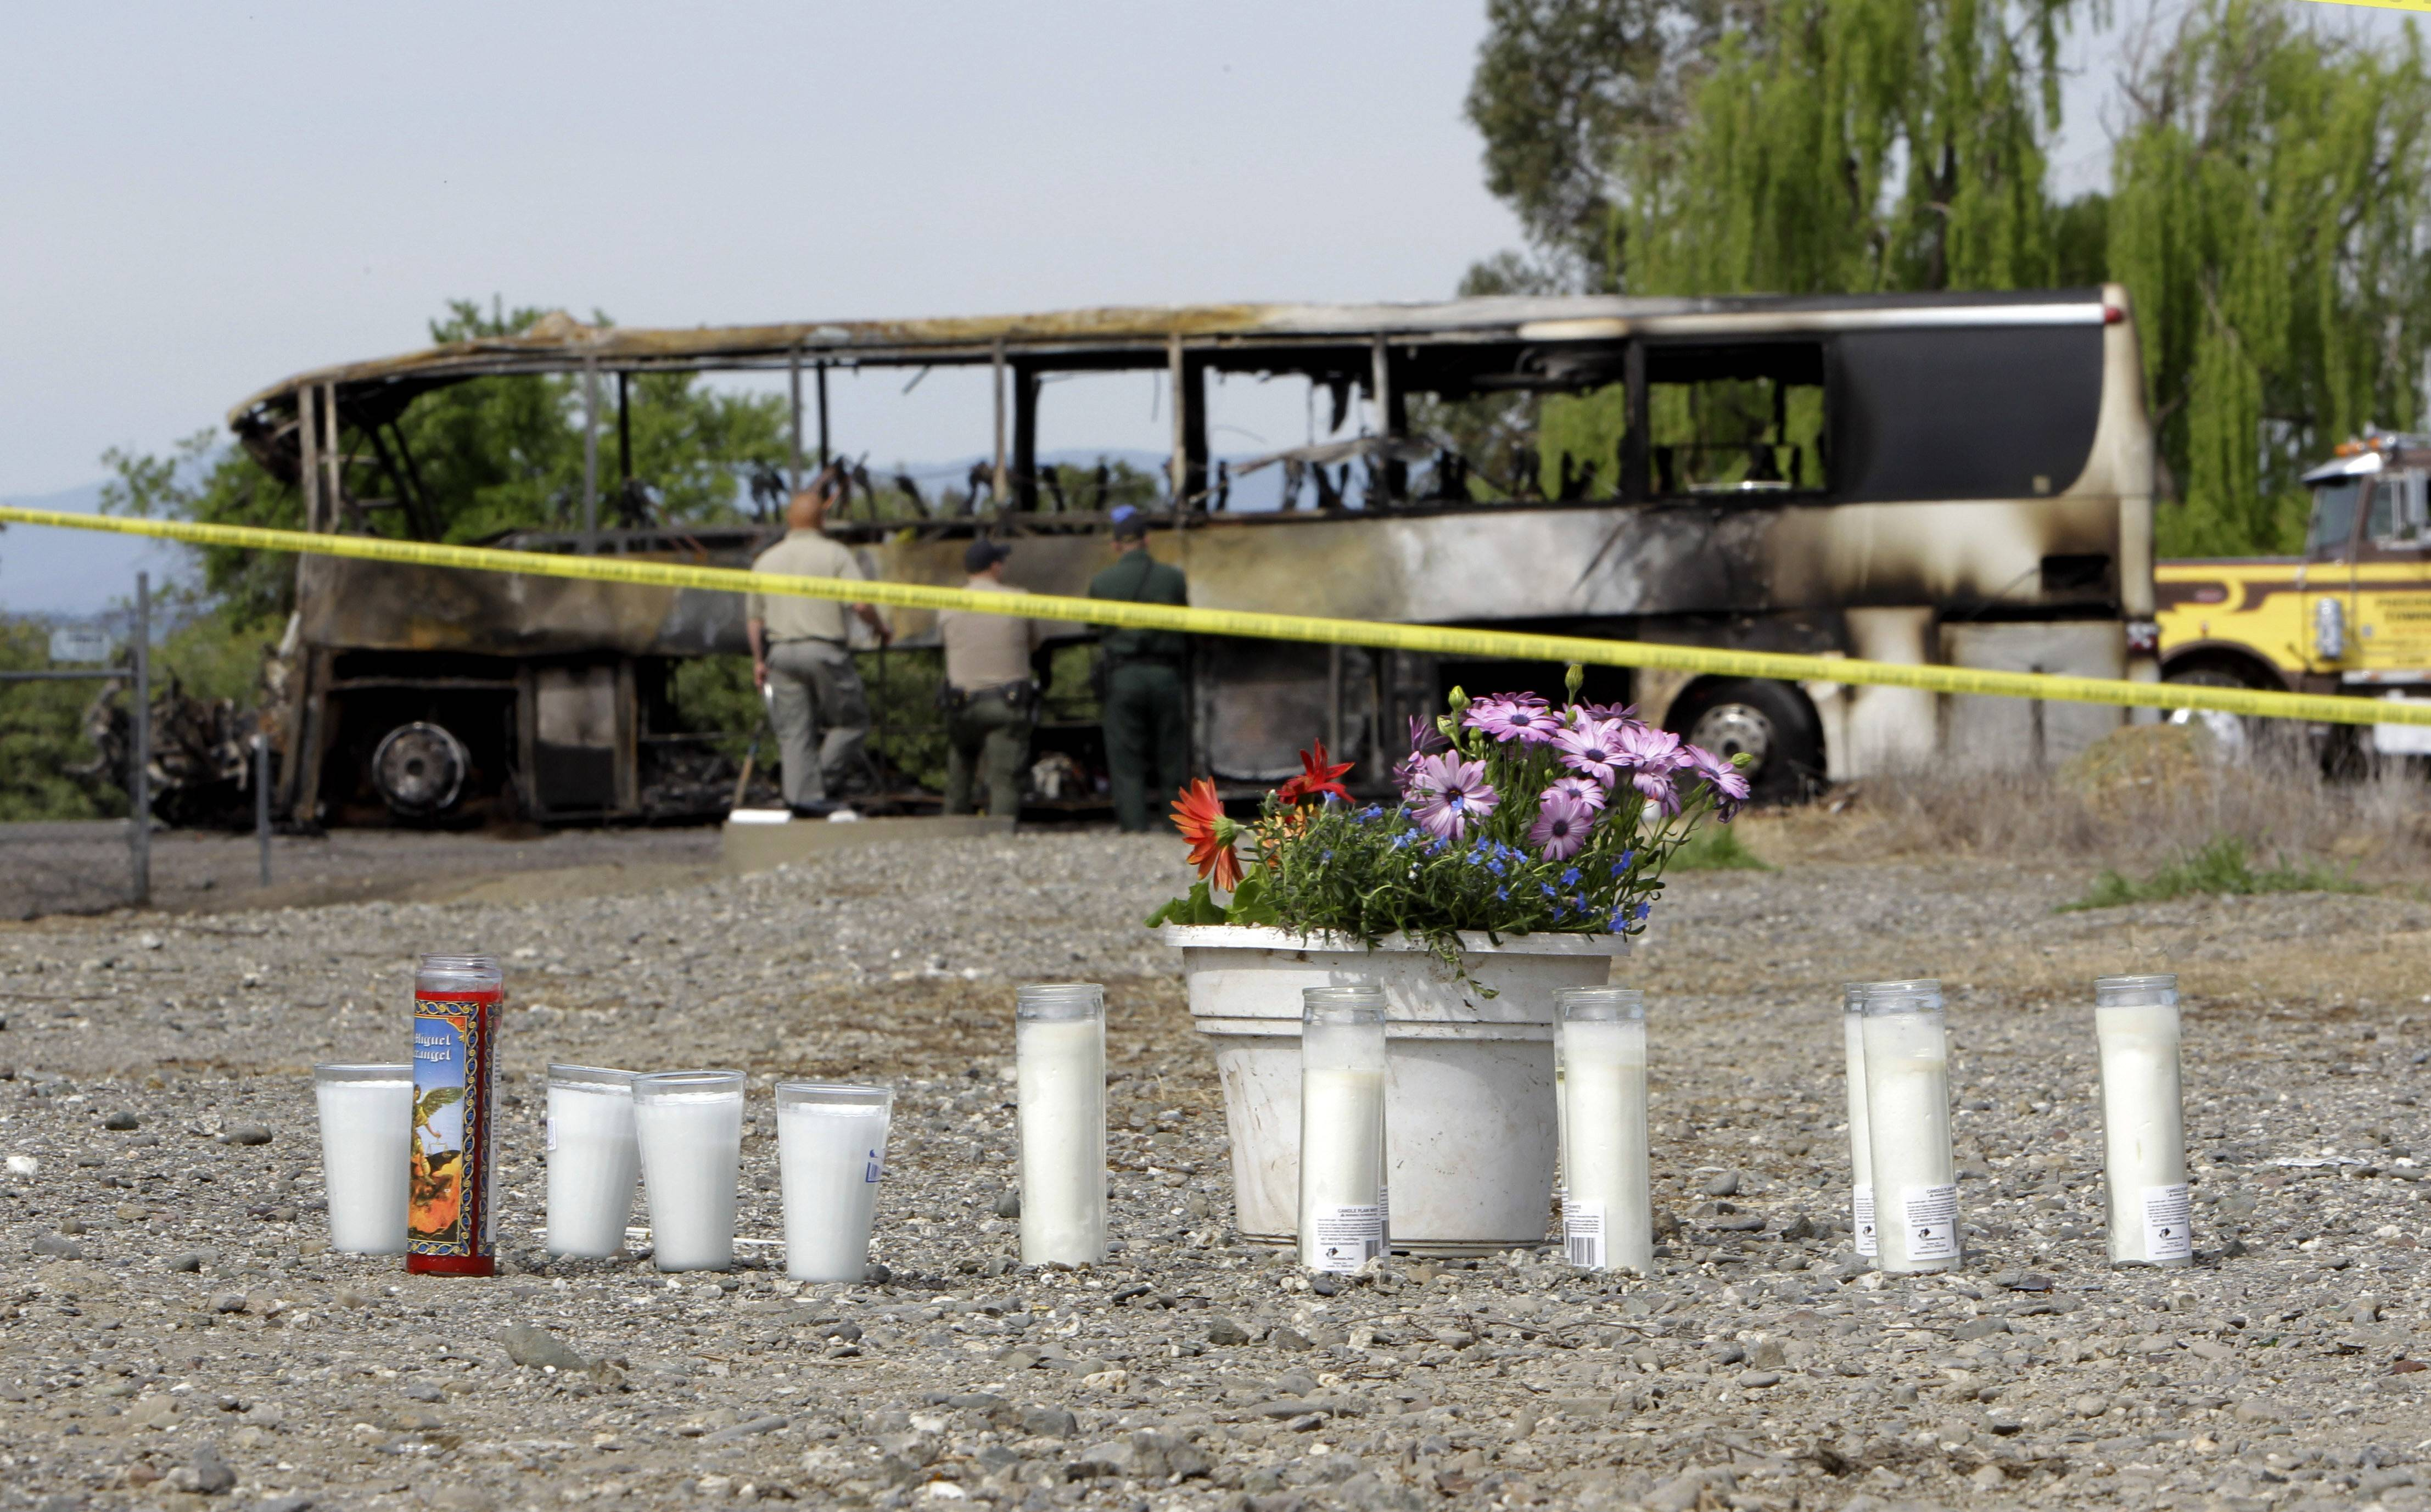 Candles and flowers are seen at a make-shift memorial, Friday, April 11, 2014, for the victims of a multi-vehicle accident that included a tour bus and a FedEX truck crashed on Interstate 5 in Orland, Calif. Ten people were killed and dozens injured in the fiery crash, Thursday, between the truck and a bus seen in background, carrying high school students on a visit to a Northern California College.